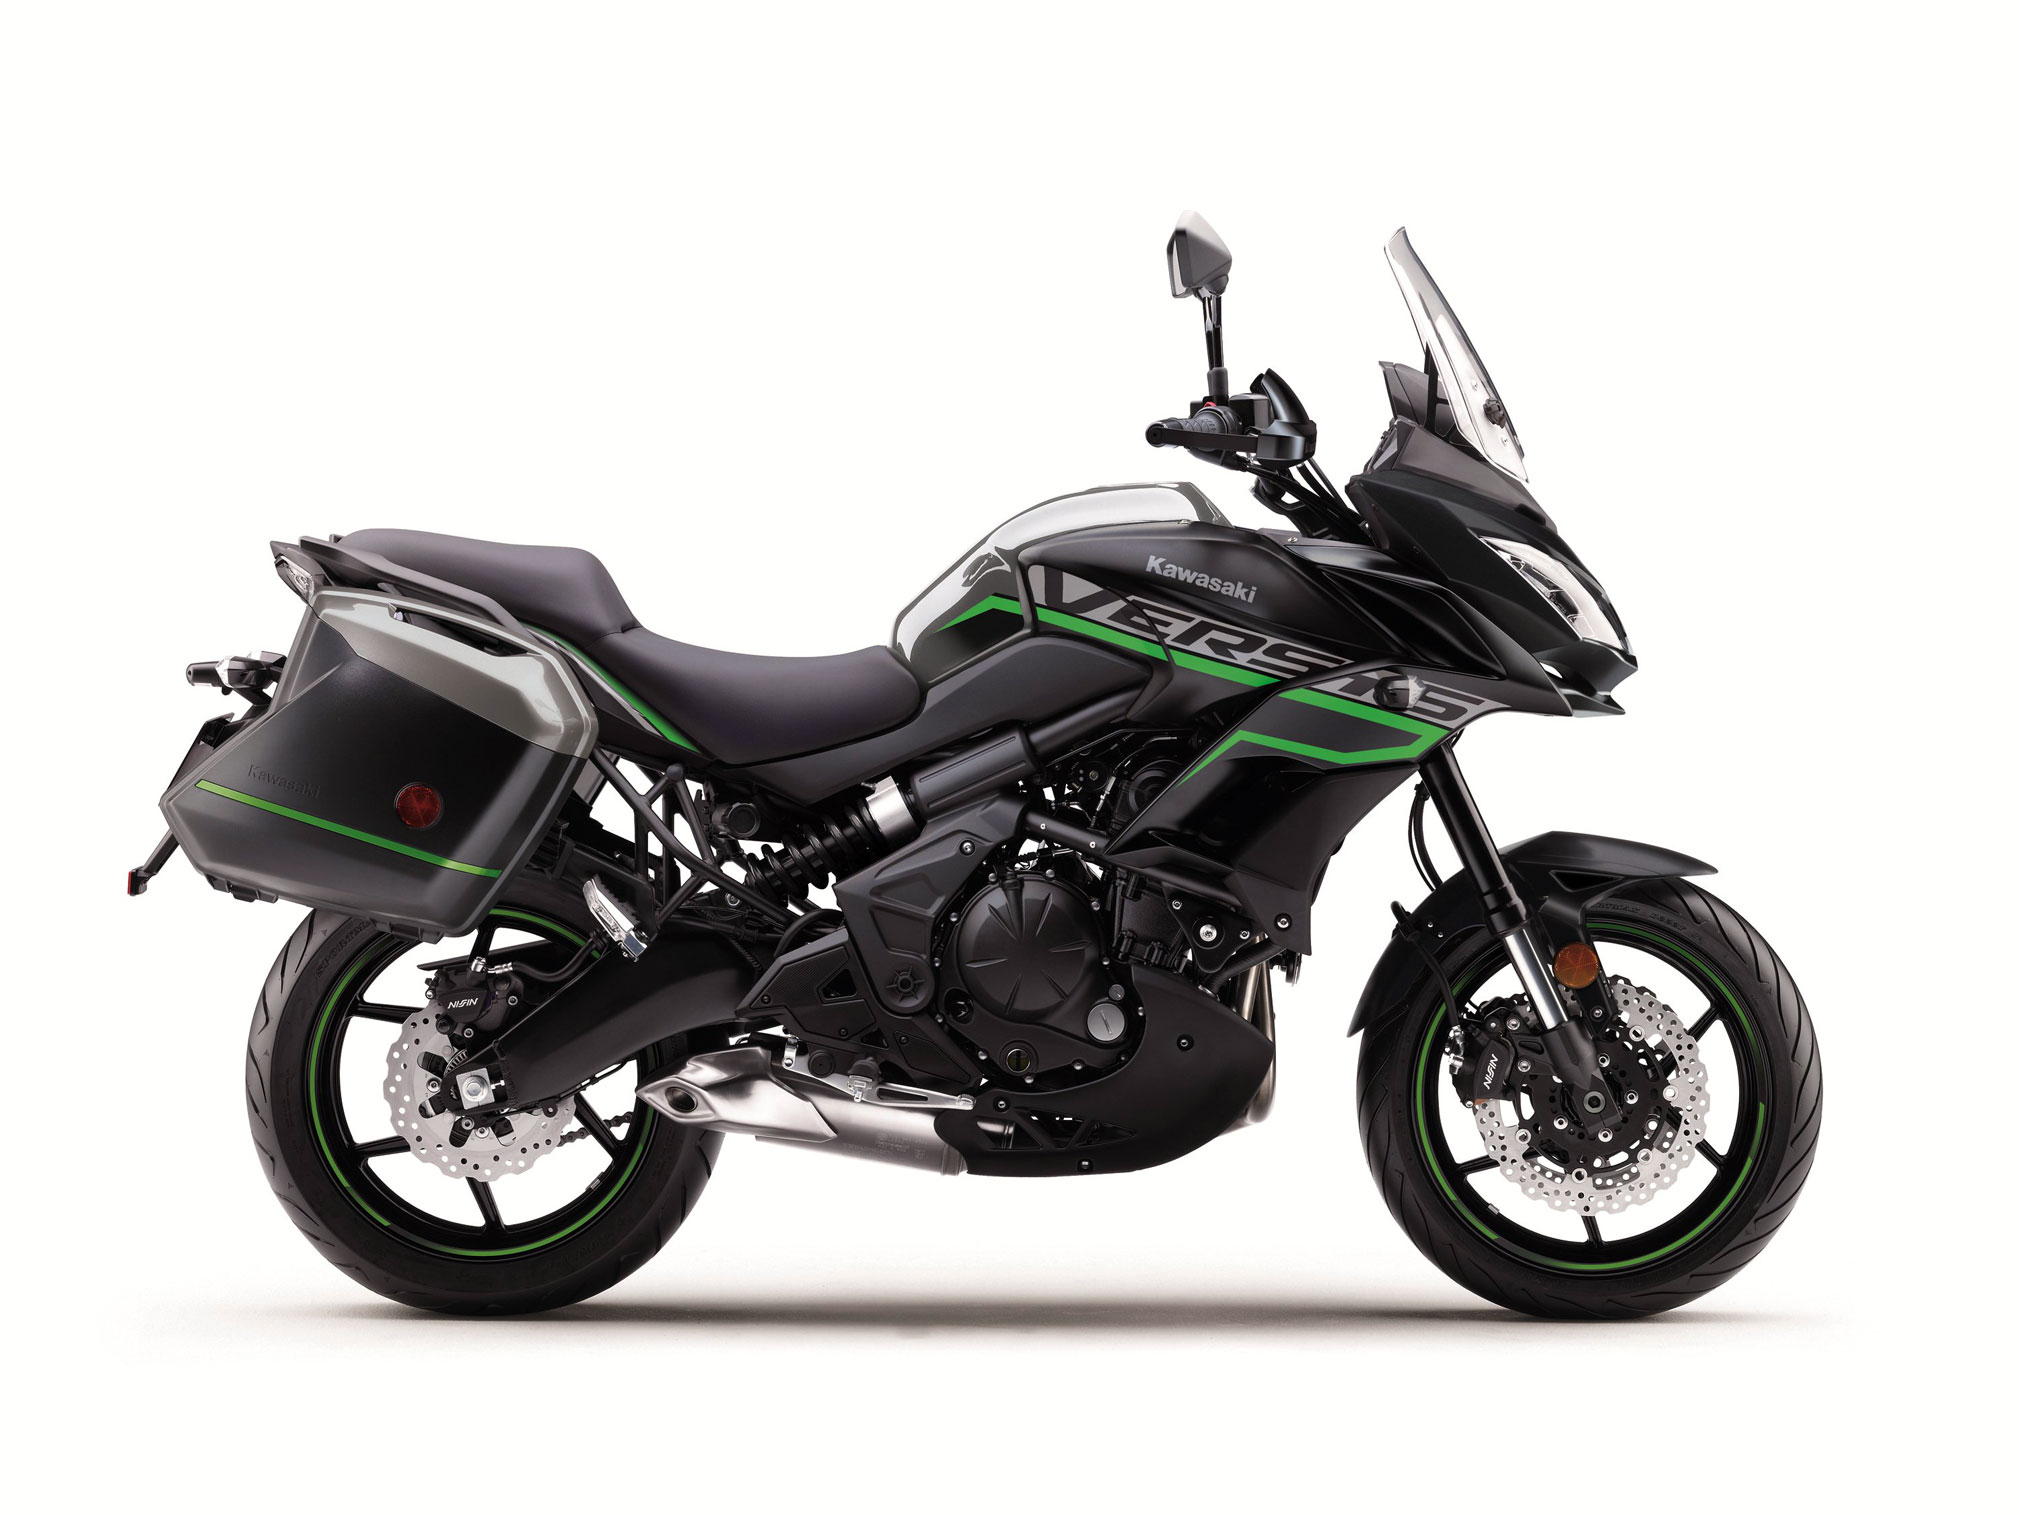 2019 kawasaki versys 650 lt abs guide total motorcycle. Black Bedroom Furniture Sets. Home Design Ideas